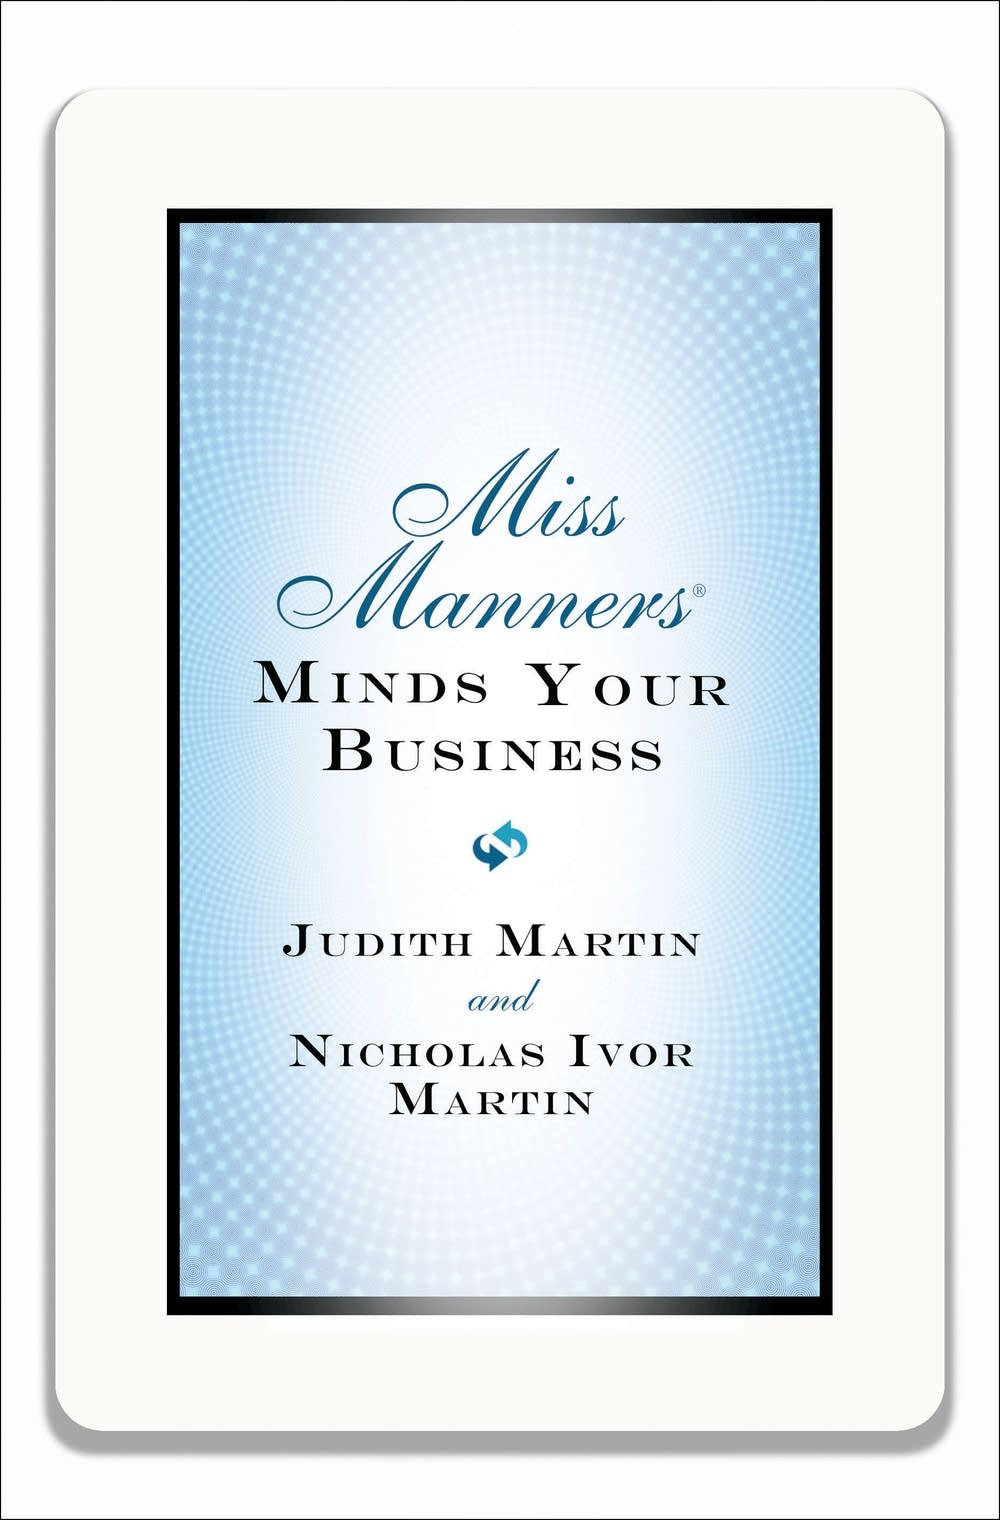 'Miss Manners Minds Your Business'